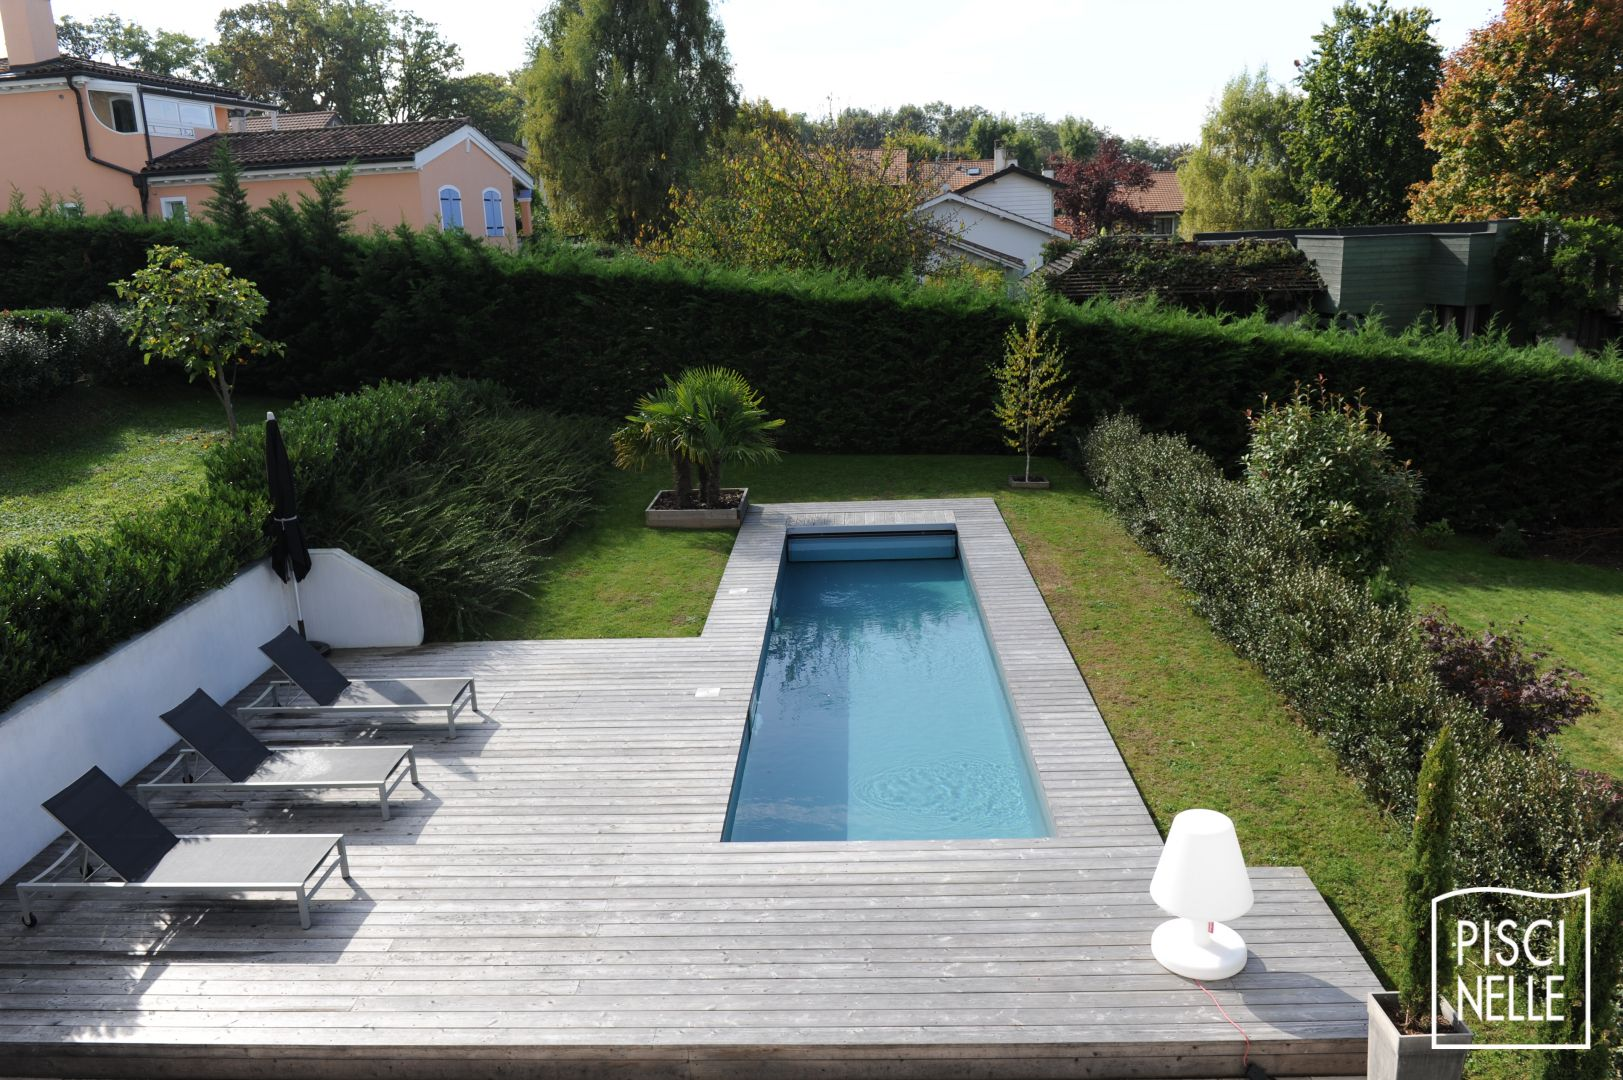 D coration piscine couloir nage la rochelle 2631 for Piscine hors sol toulouse